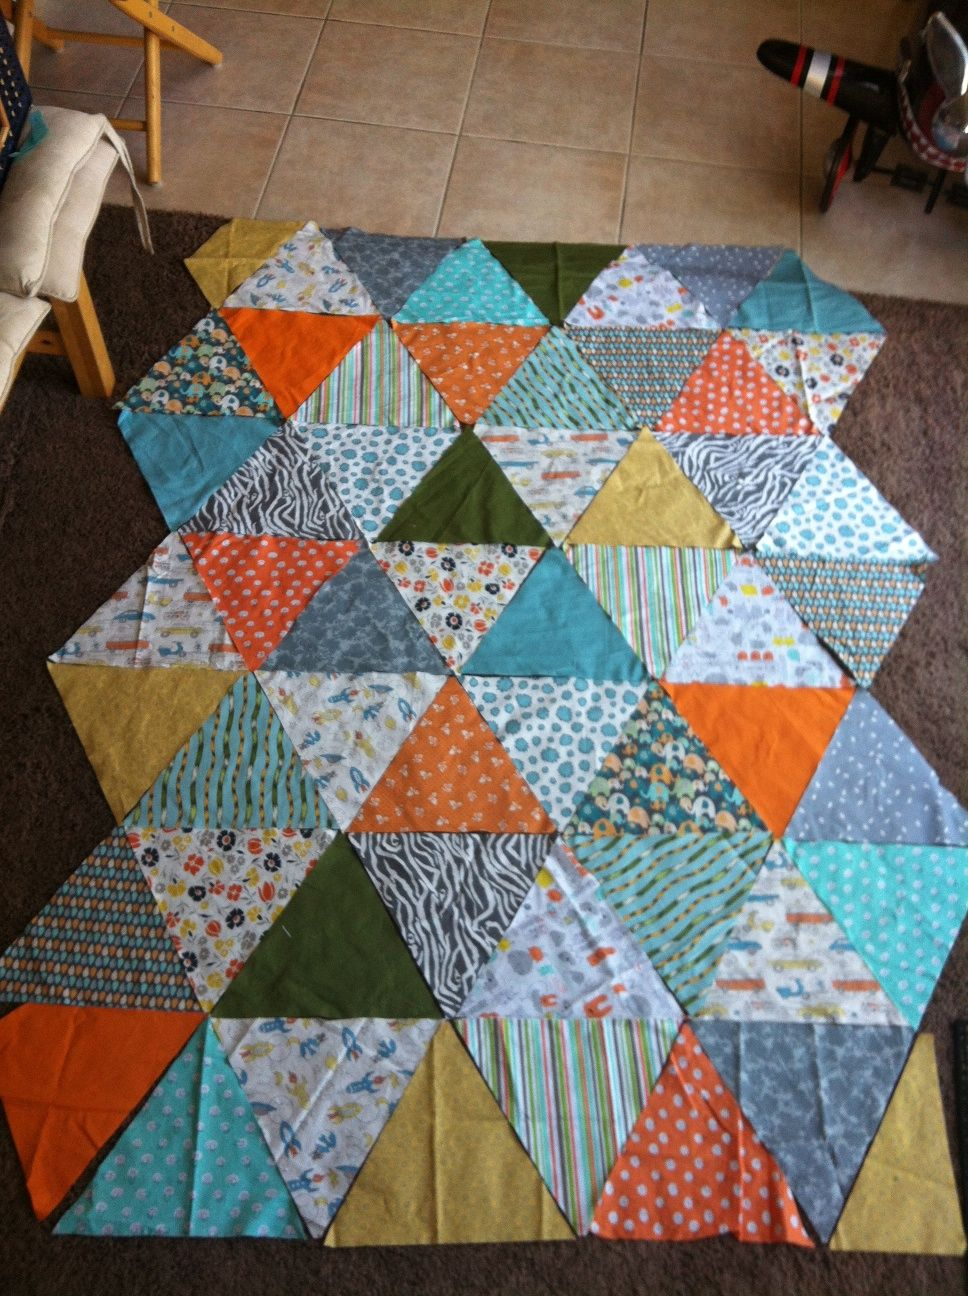 DIY-Triangle Quilt | Room for the boy | Pinterest | Triangles ... : how to sew a triangle quilt - Adamdwight.com